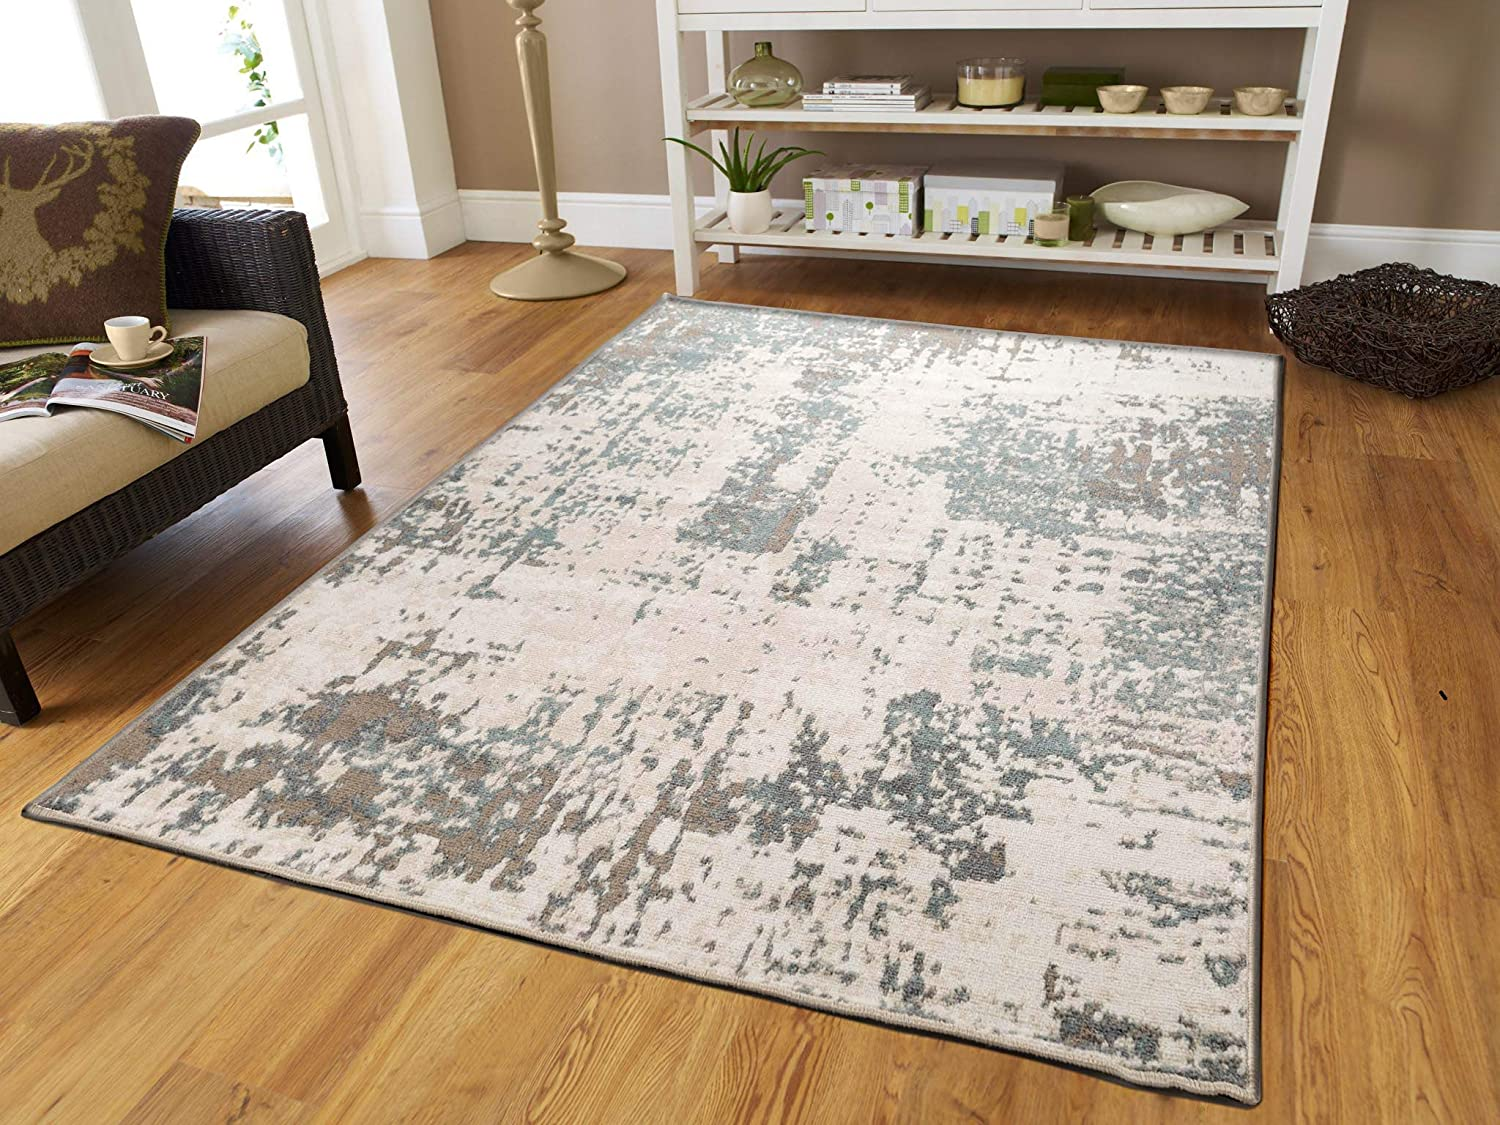 Distressed Gray Rugs for Living Room 5x7 Gray Rugs with Natural Jute Backing 5'x8'